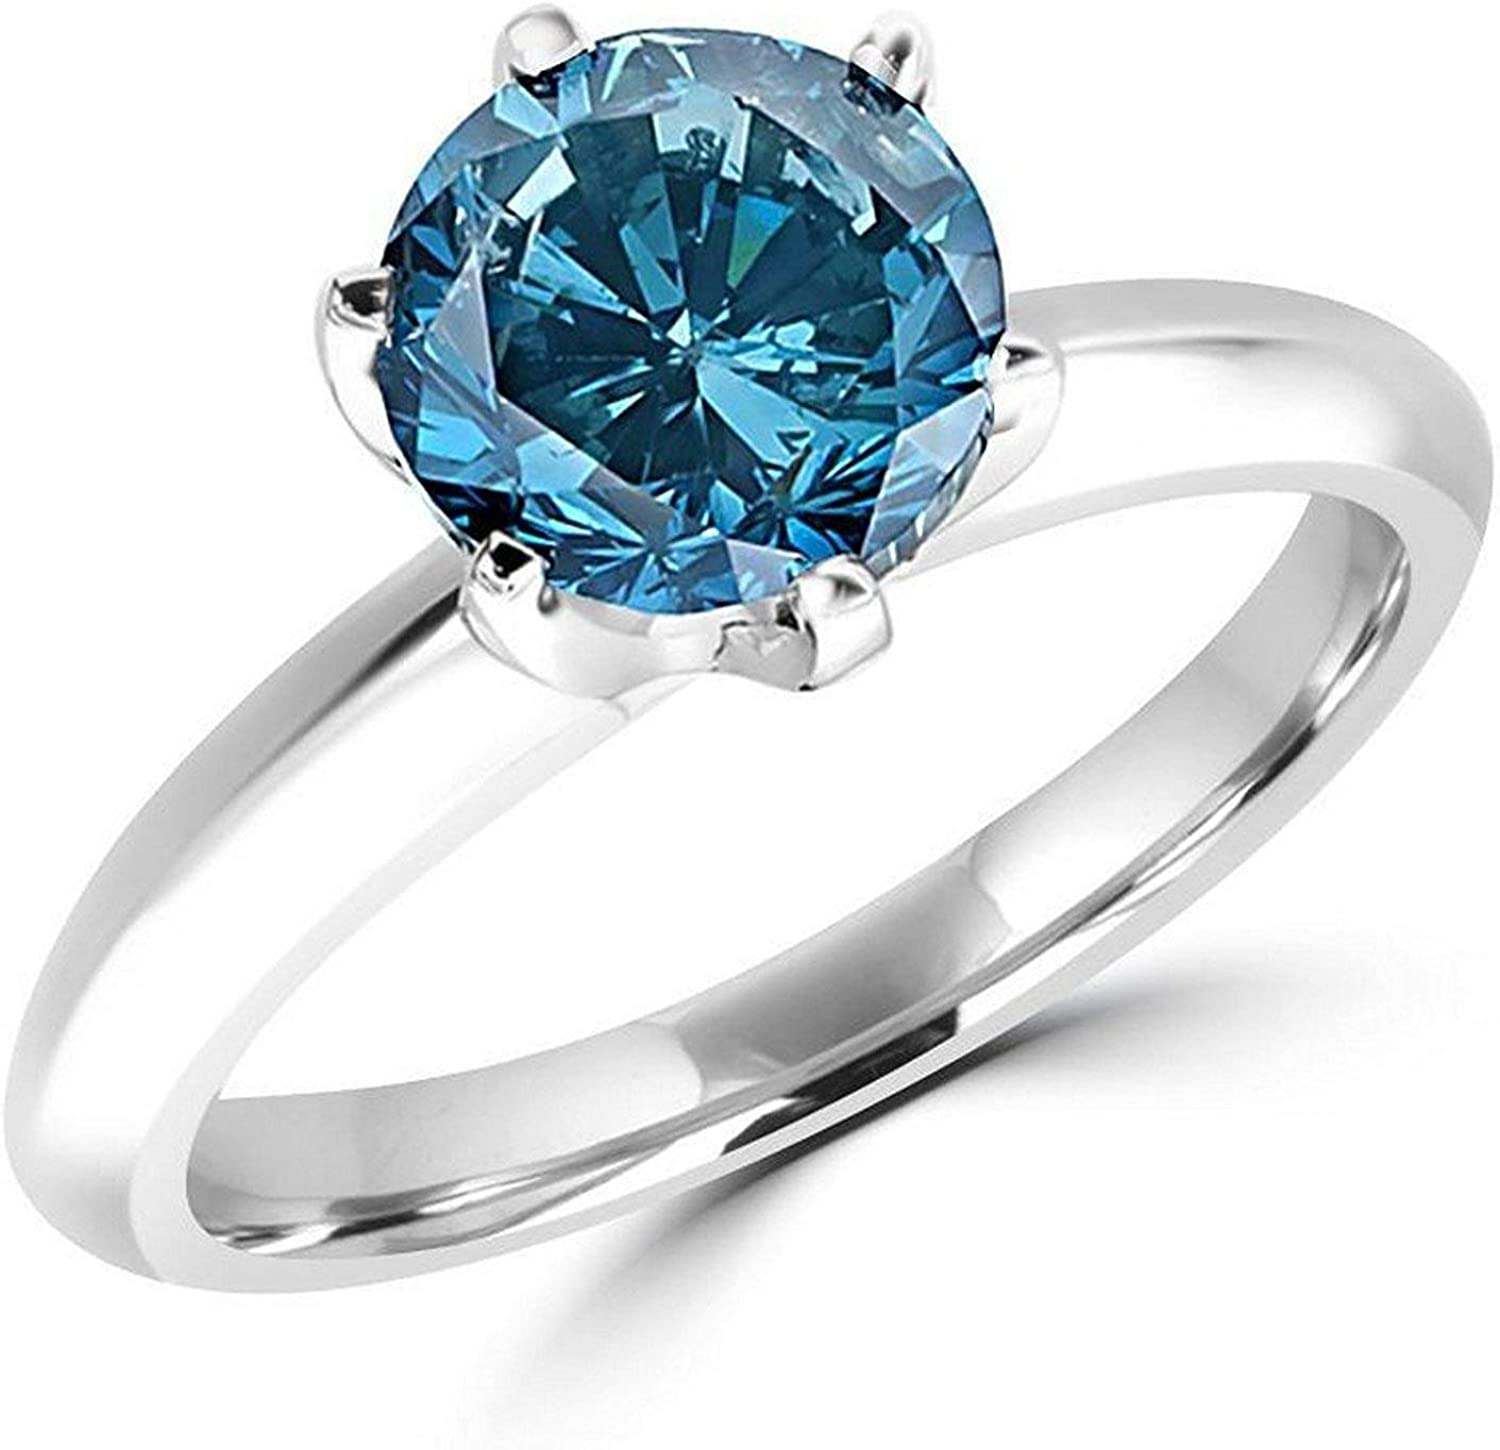 Amazon.com: 1/2-5 Carat Total Weight Round 14K White Gold Blue Diamond Ring  (AAA Quality): Jewelry